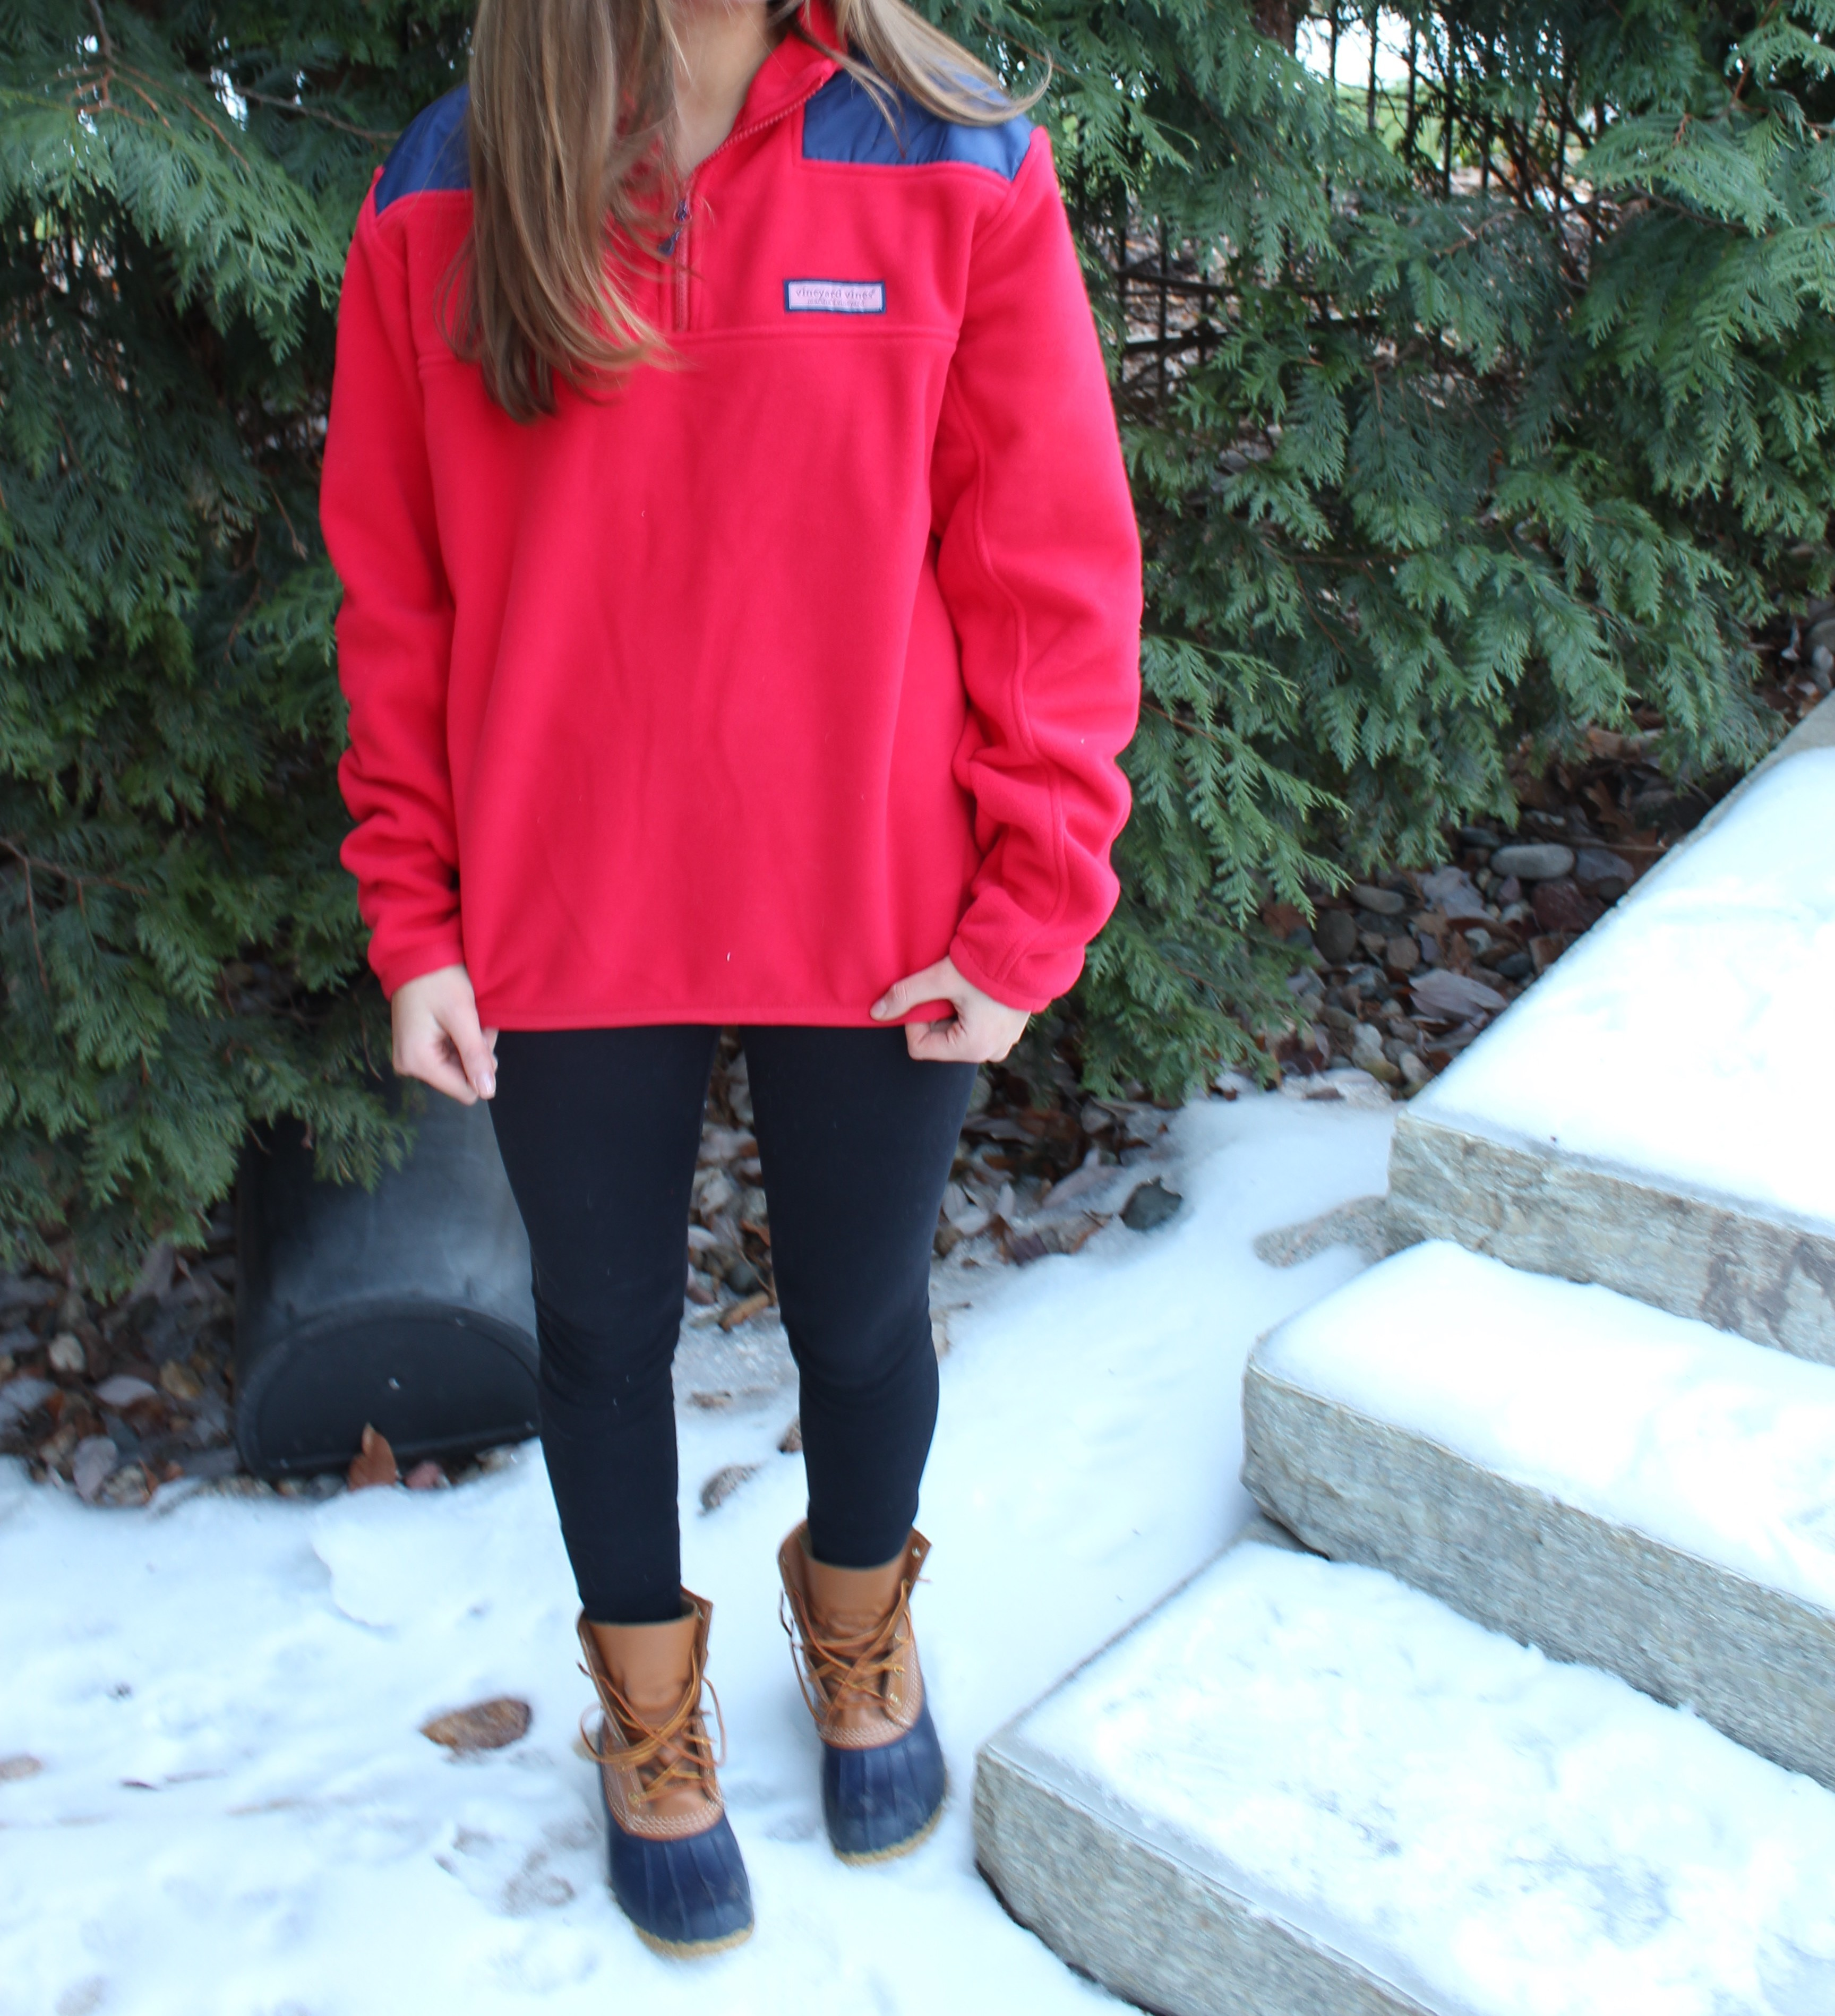 Cold Weather Means Oversized Shep Shirts, Duck Boots, & Mittens | OOTD by Lauren Lindmark on Daily Dose of Charm